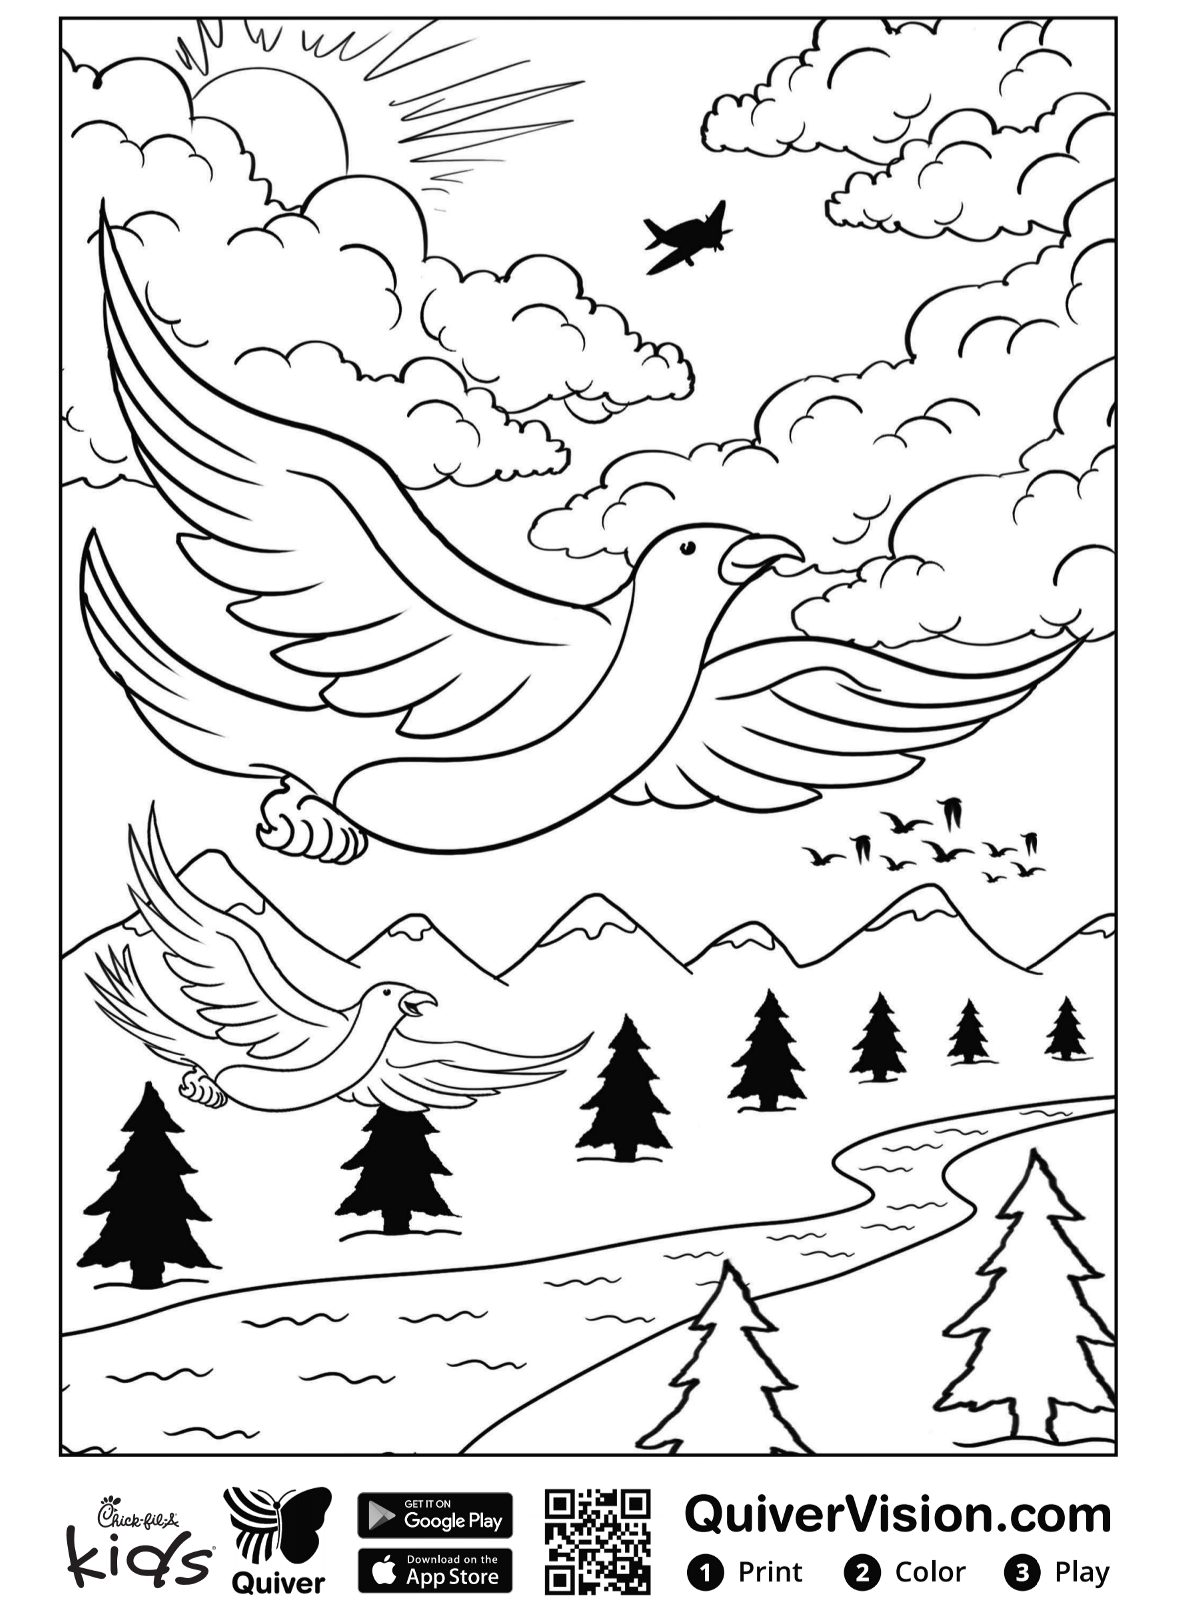 Kids-n-fun.com   Coloring page Quiver seagulls